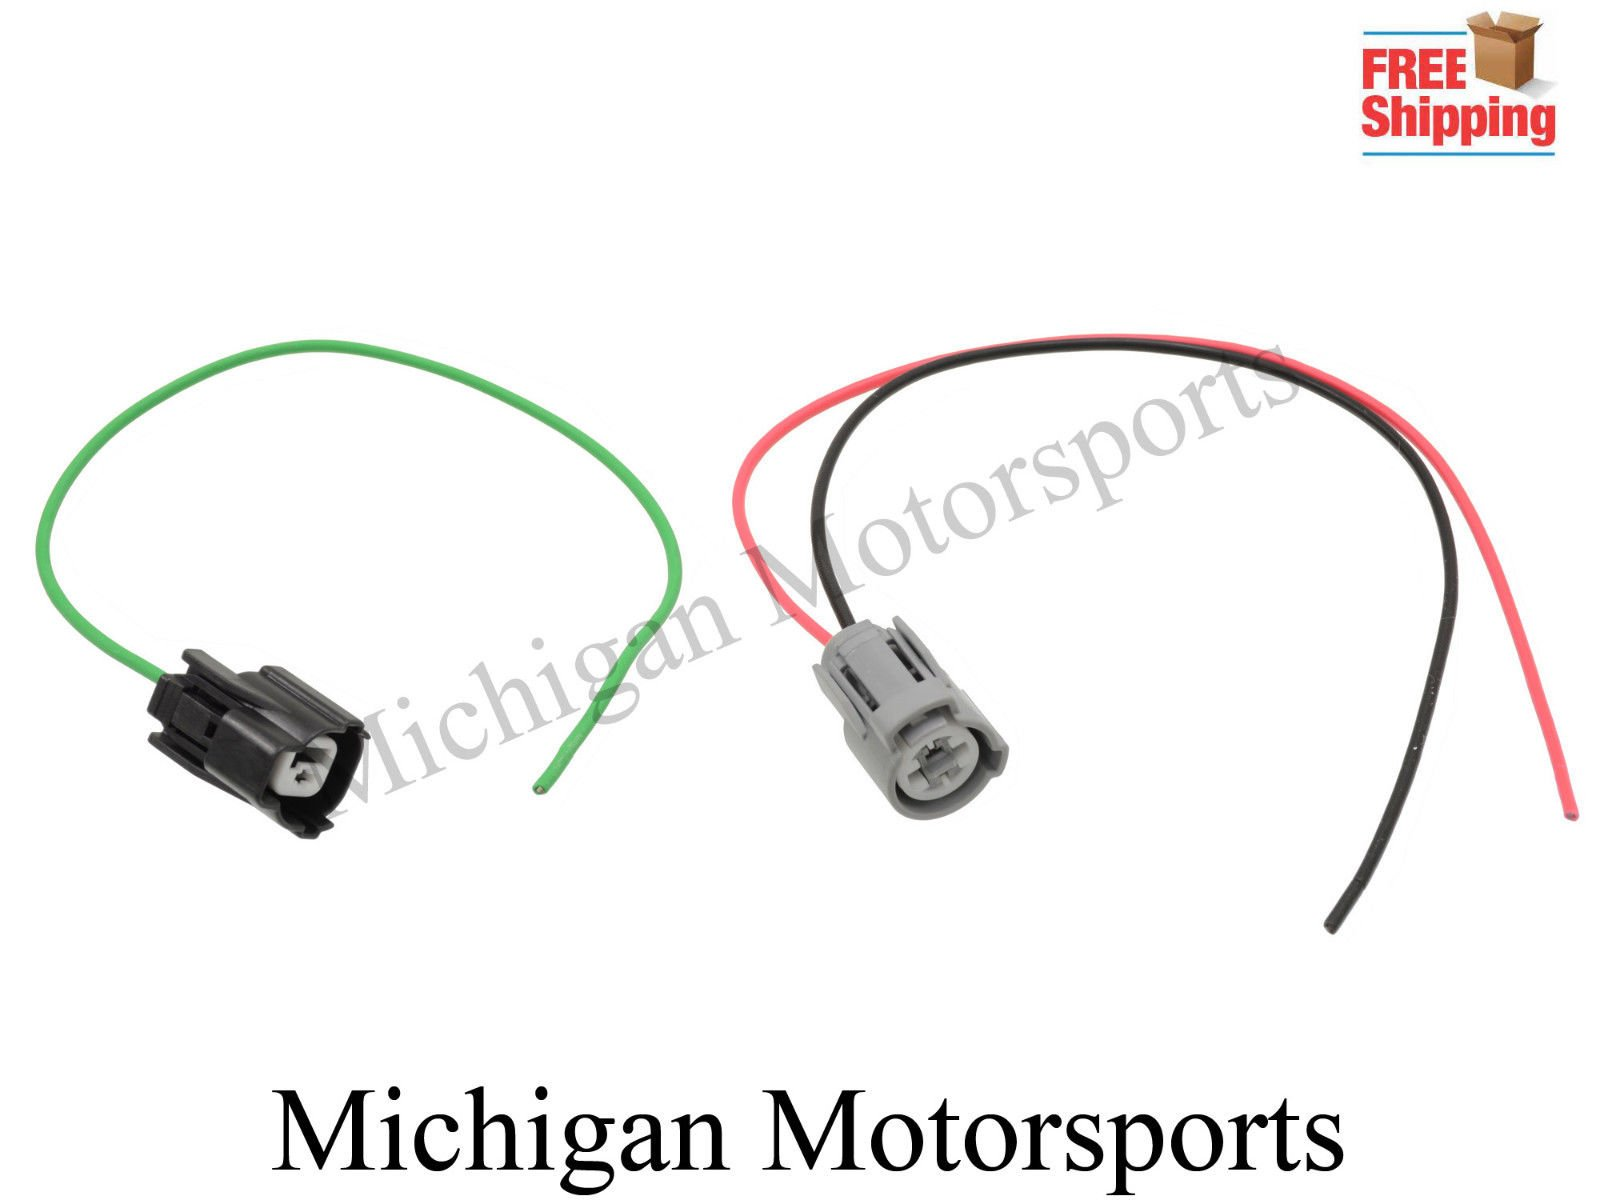 Cheap 1 6l Vtec Find Deals On Line At Alibabacom 96 Honda Accord Wiring Harness Get Quotations Michigan Motorsports Oil Pressure Switch And Solenoid Plug Pigtail Kit Fits Civic